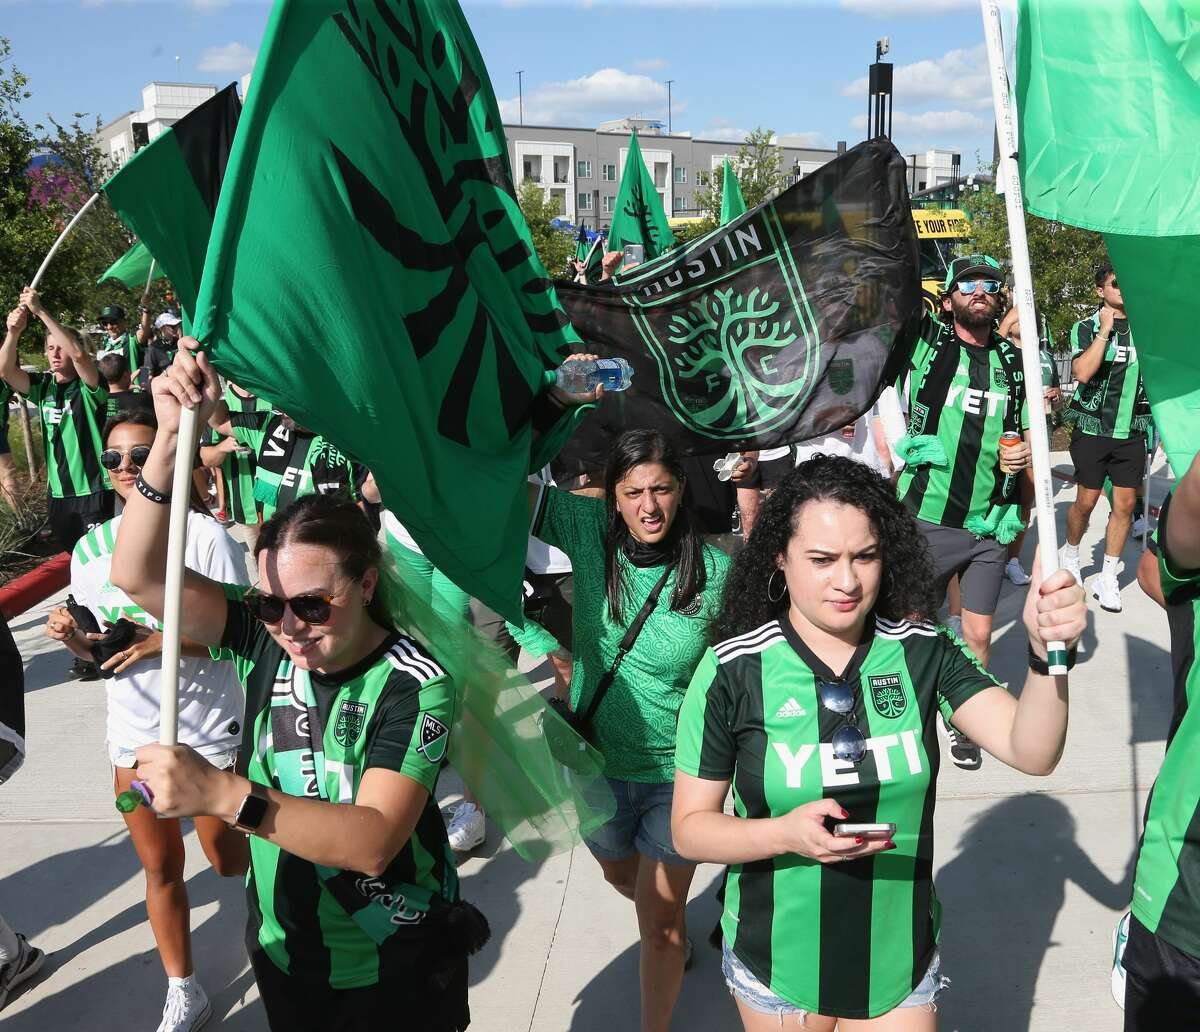 AUSTIN, TX - JUNE 19: Fans attend the inaugural home game between San Jose Earthquakes and Austin FC at Q2 Stadium on June 19, 2021 in Austin, Texas. (Photo by Gary Miller/Getty Images)